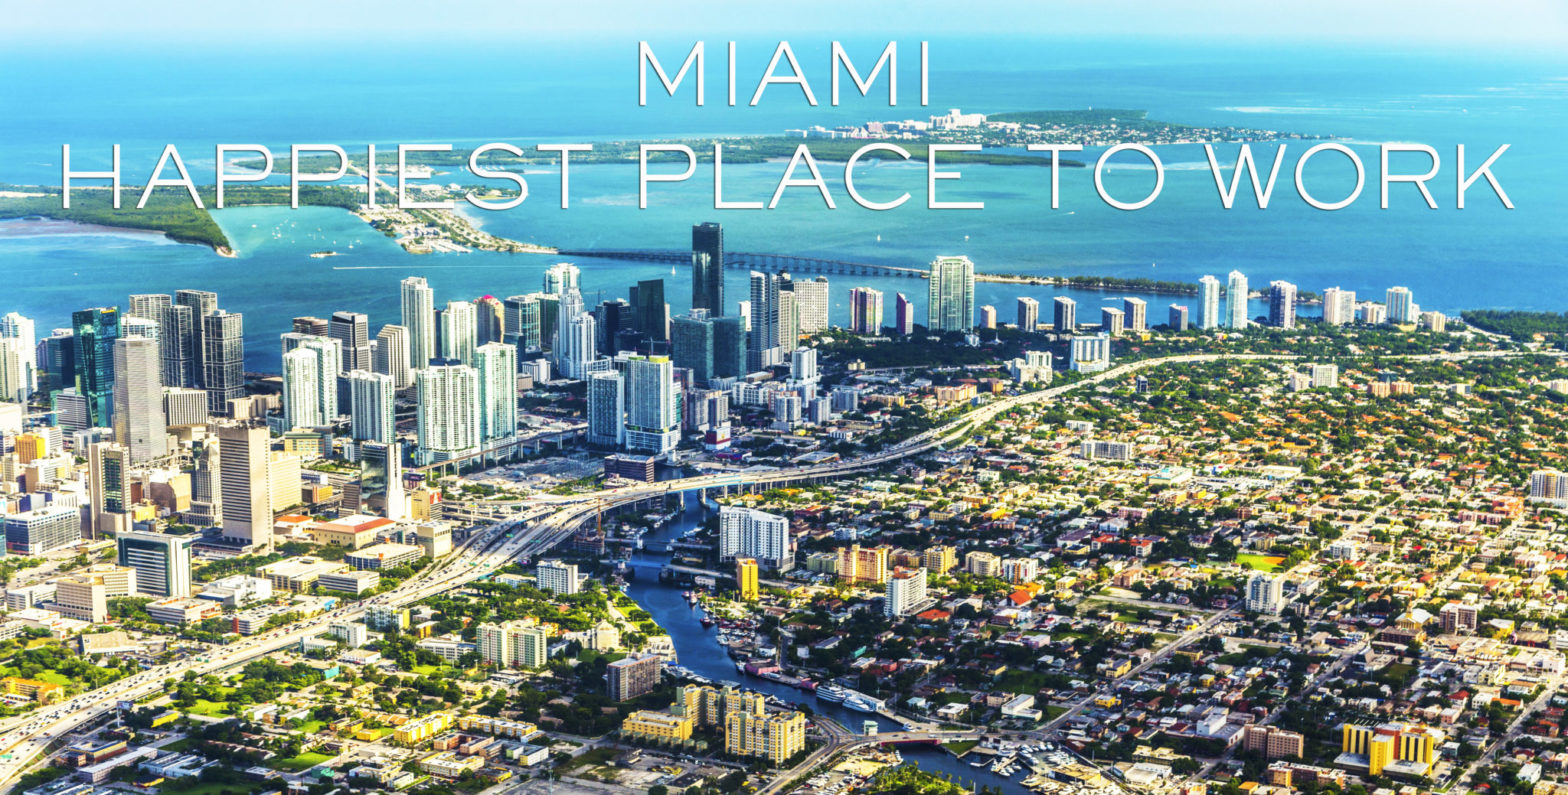 Miami, the best city to work in 2016